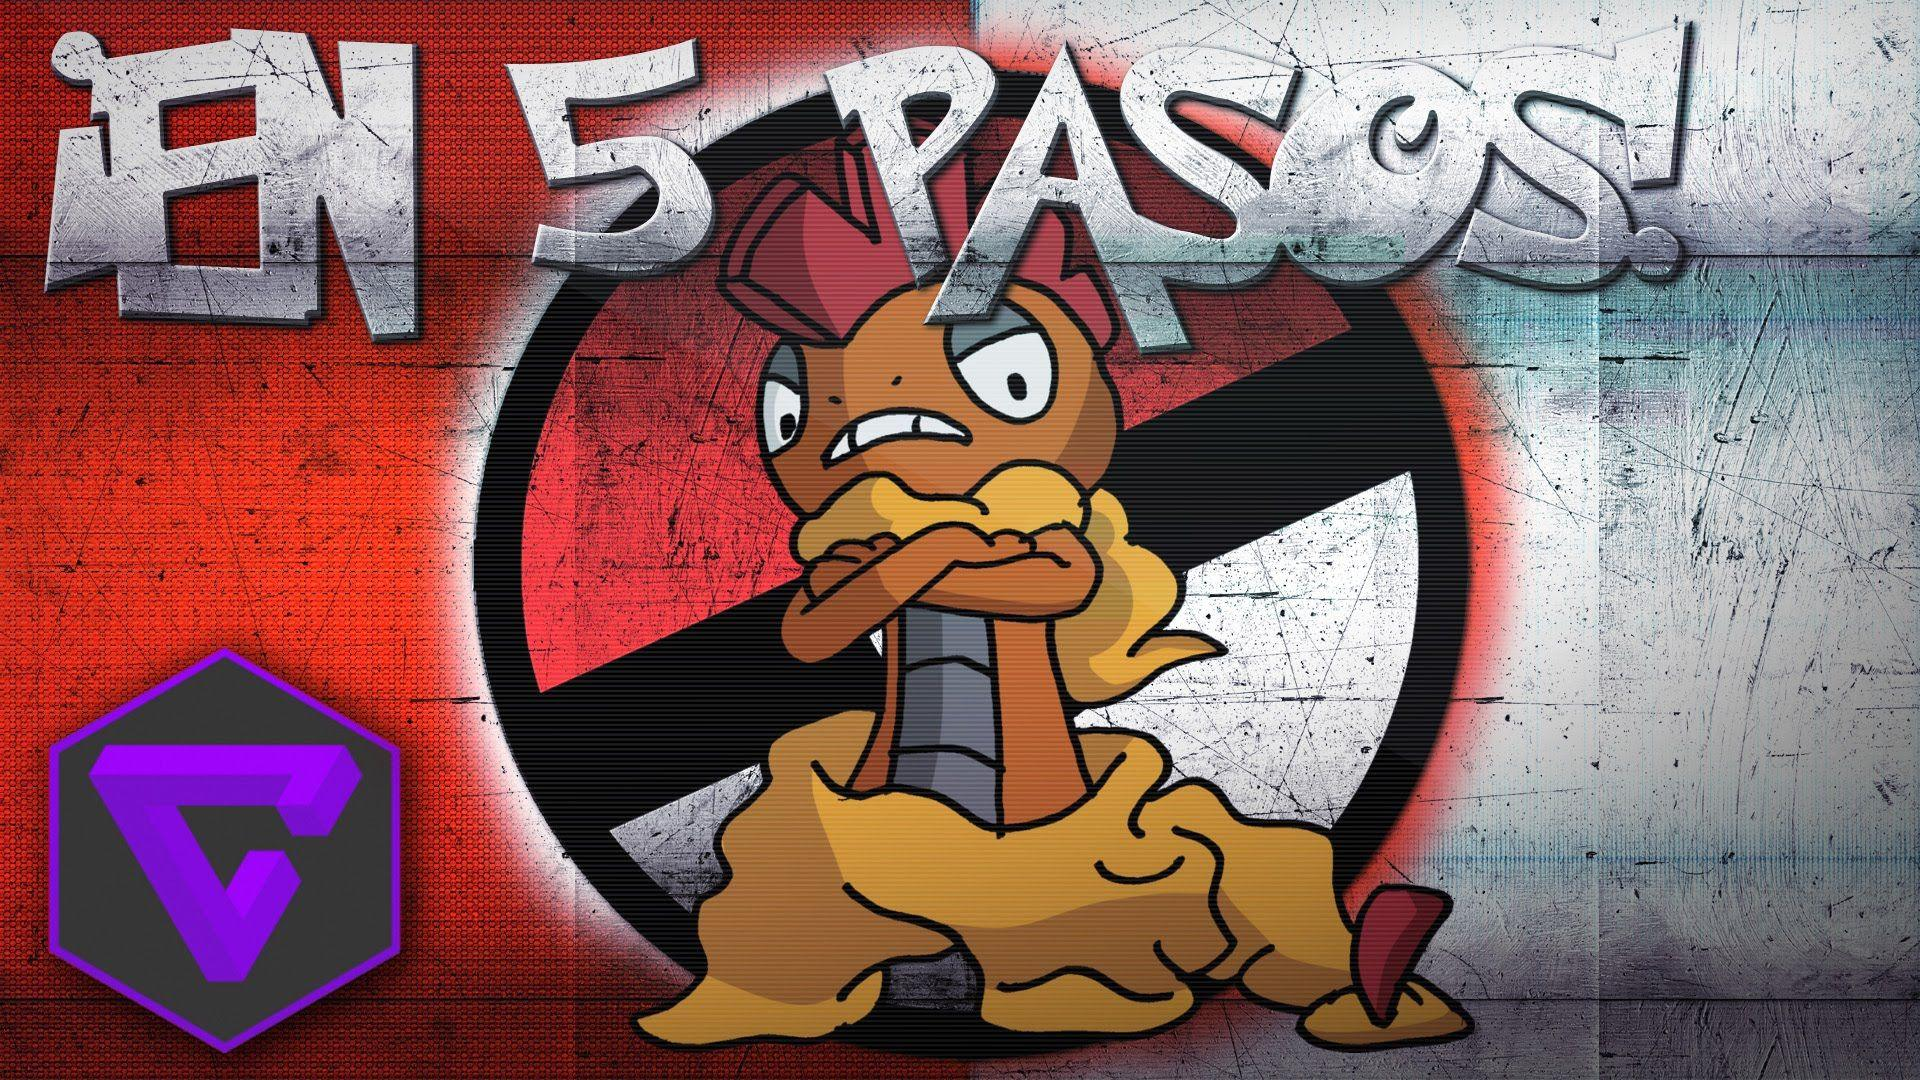 POKÉMON: ¡SCRAFTY EN 5 PASOS! (New) - YouTube